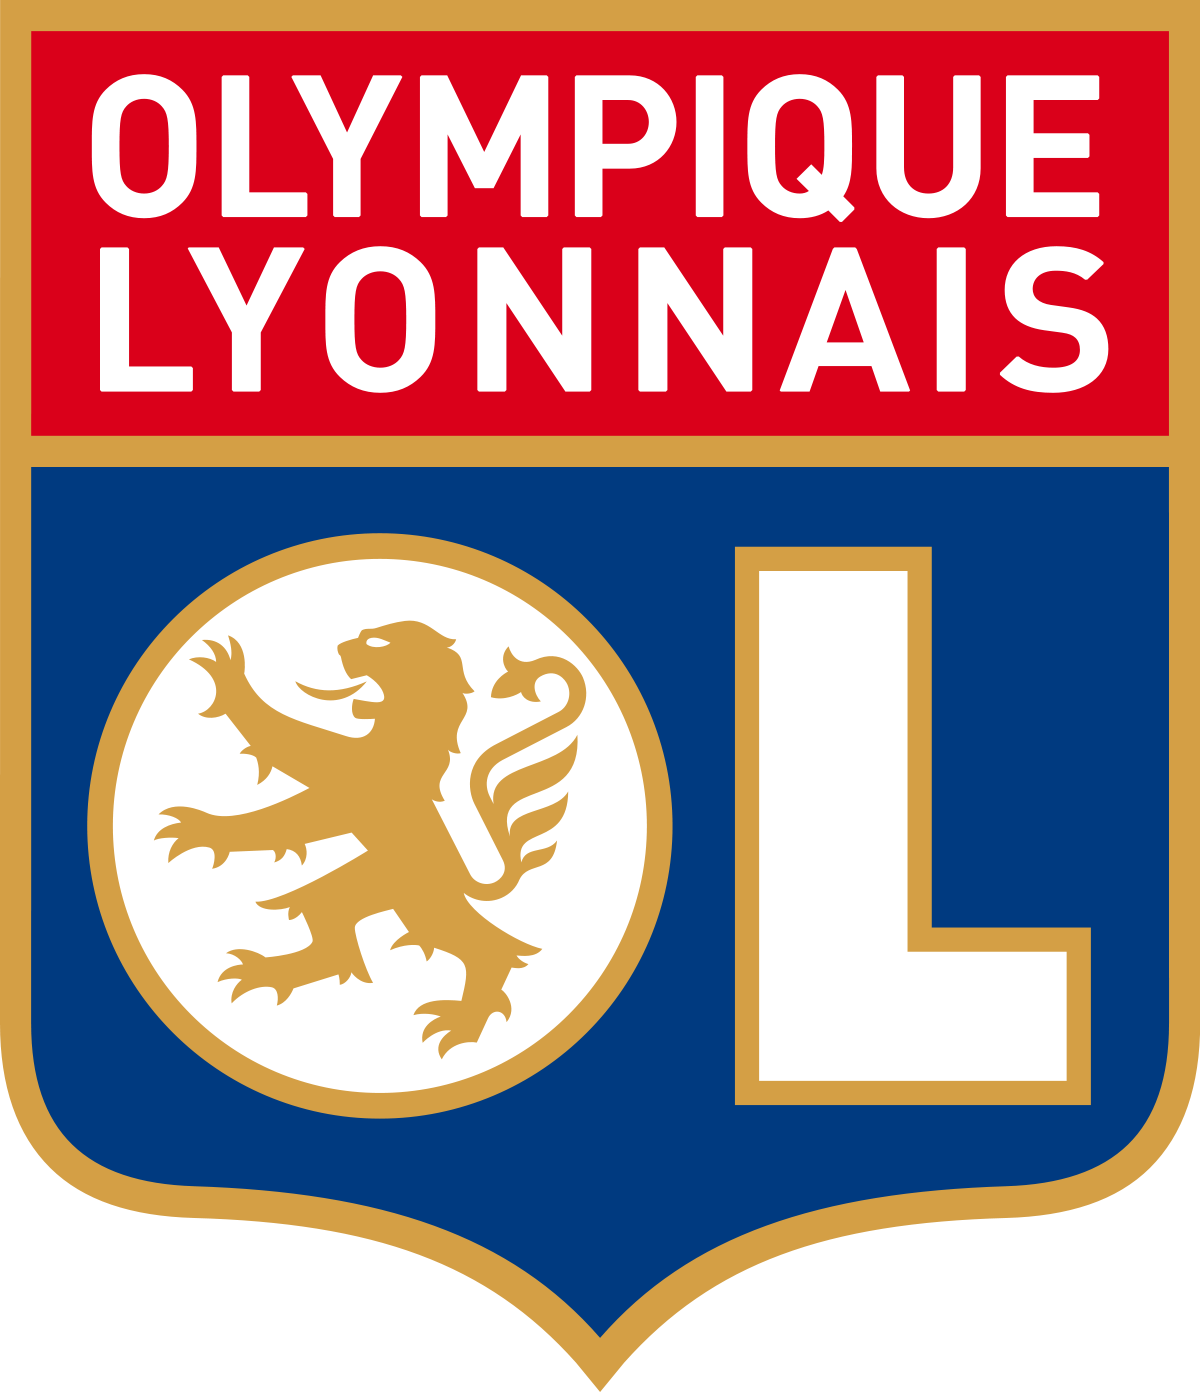 Olympique Lyonnais Feminin Wikipedia Football Logo Lyon Football Team Logos